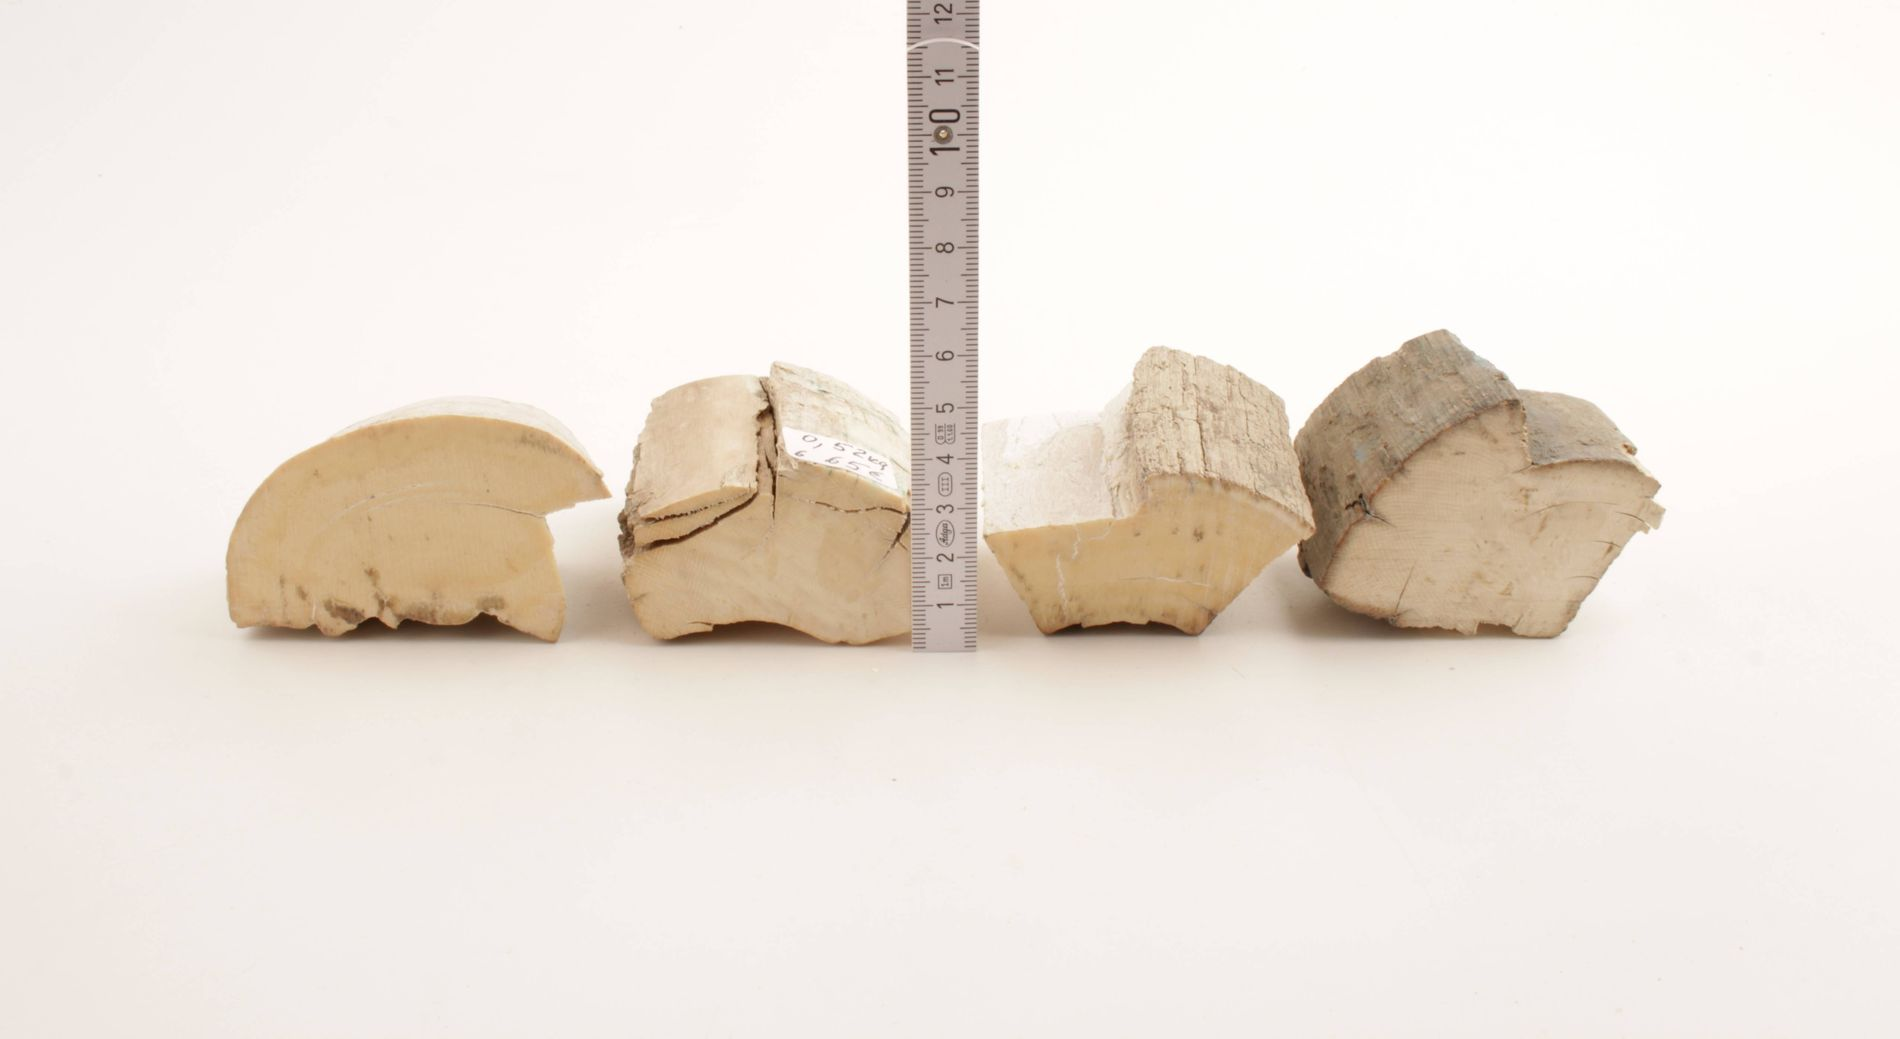 Untreated mammoth ivory pieces